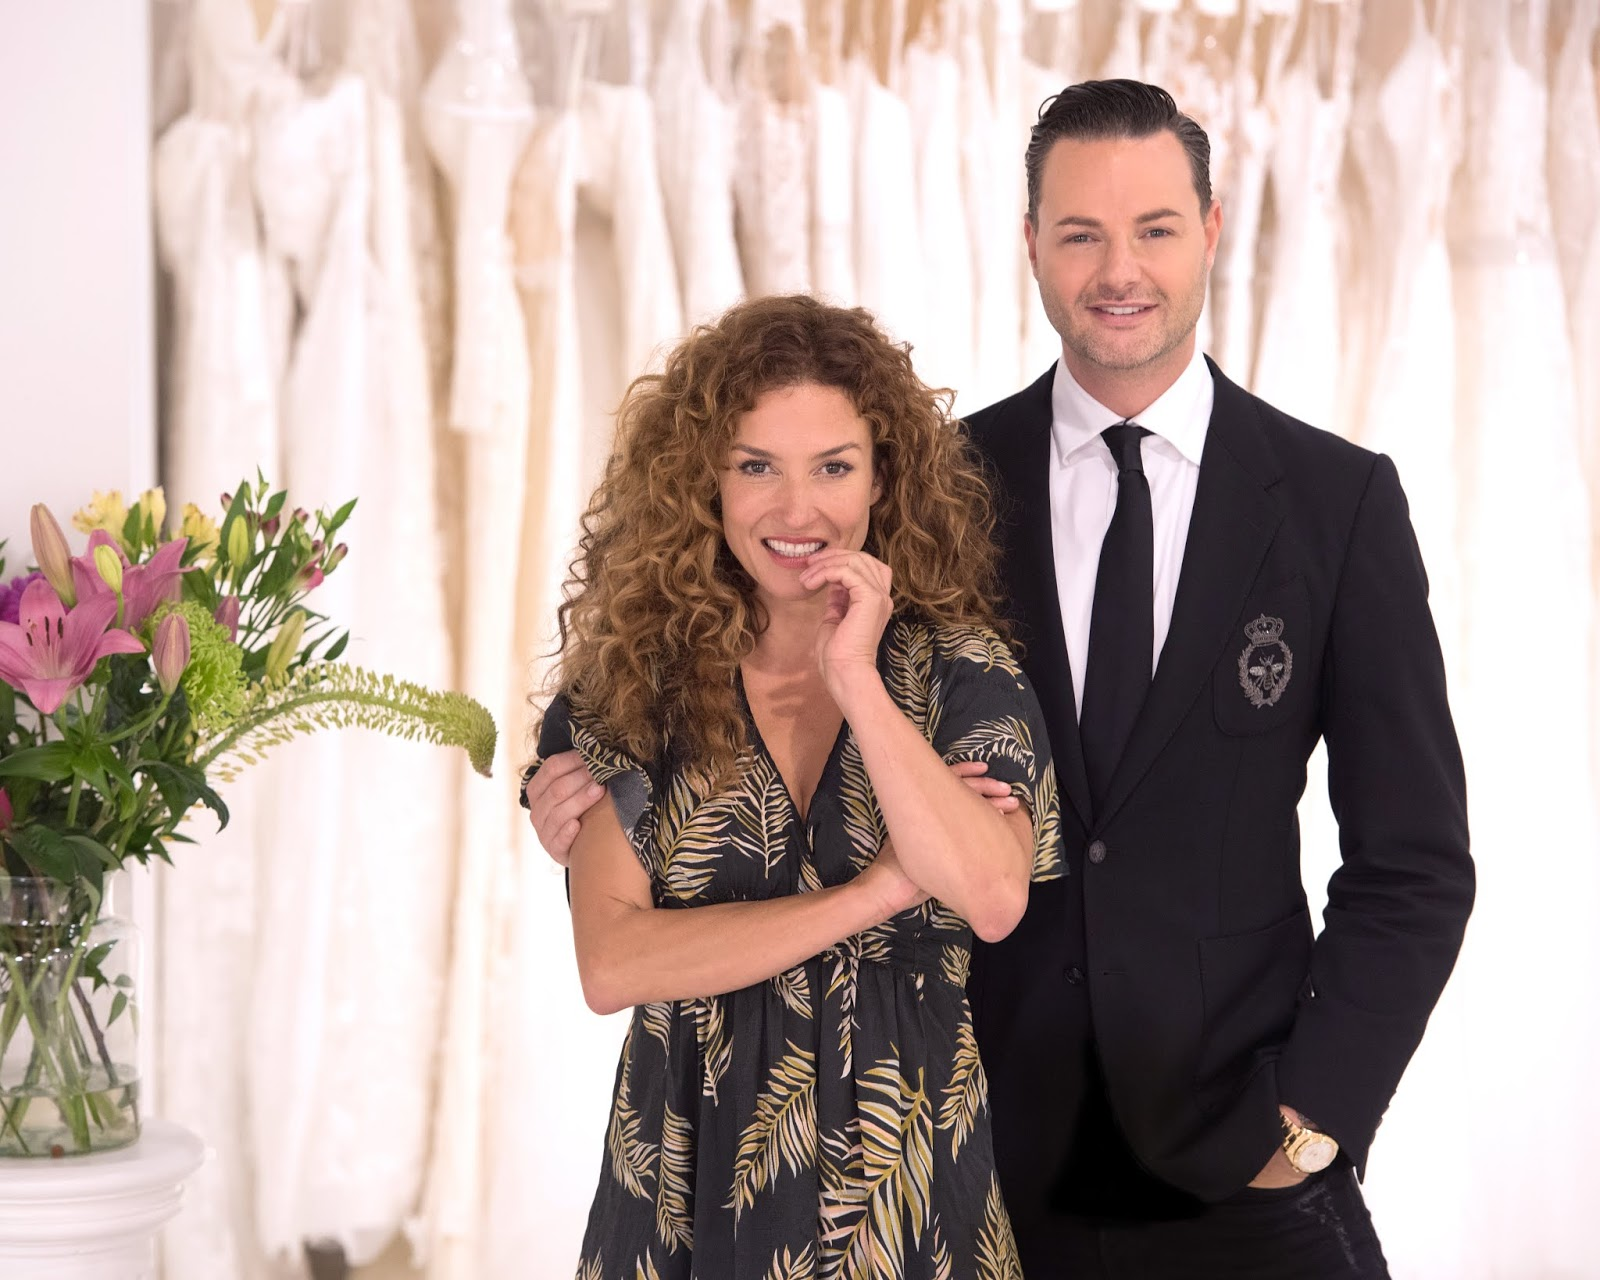 Dutch Radio Katja Schuurman Te Zien In Say Yes To The Dress Benelux